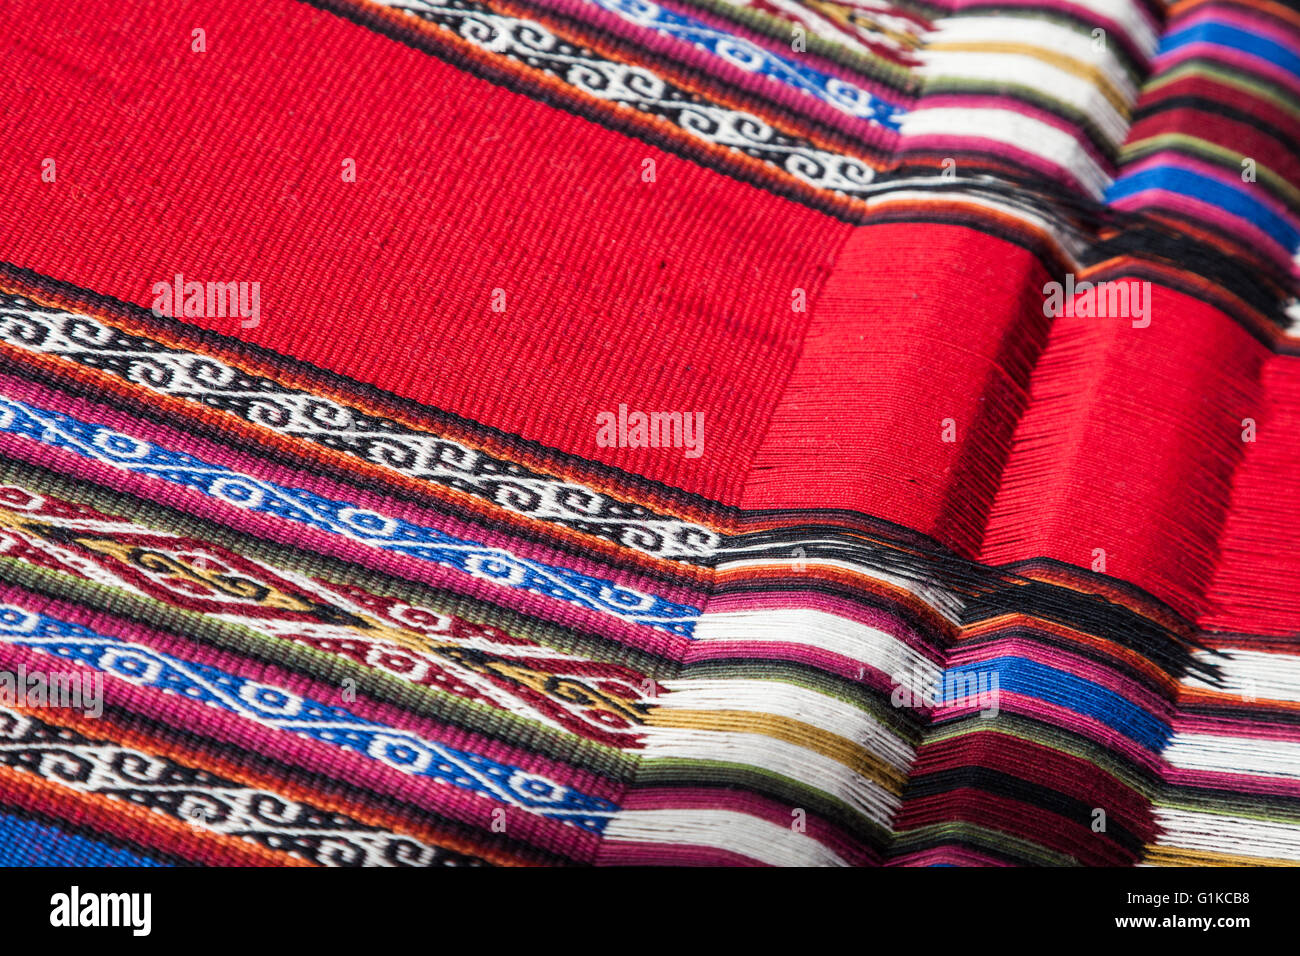 Abstract image of a hand woven table runner in the village of Chinchero, Peru - Stock Image